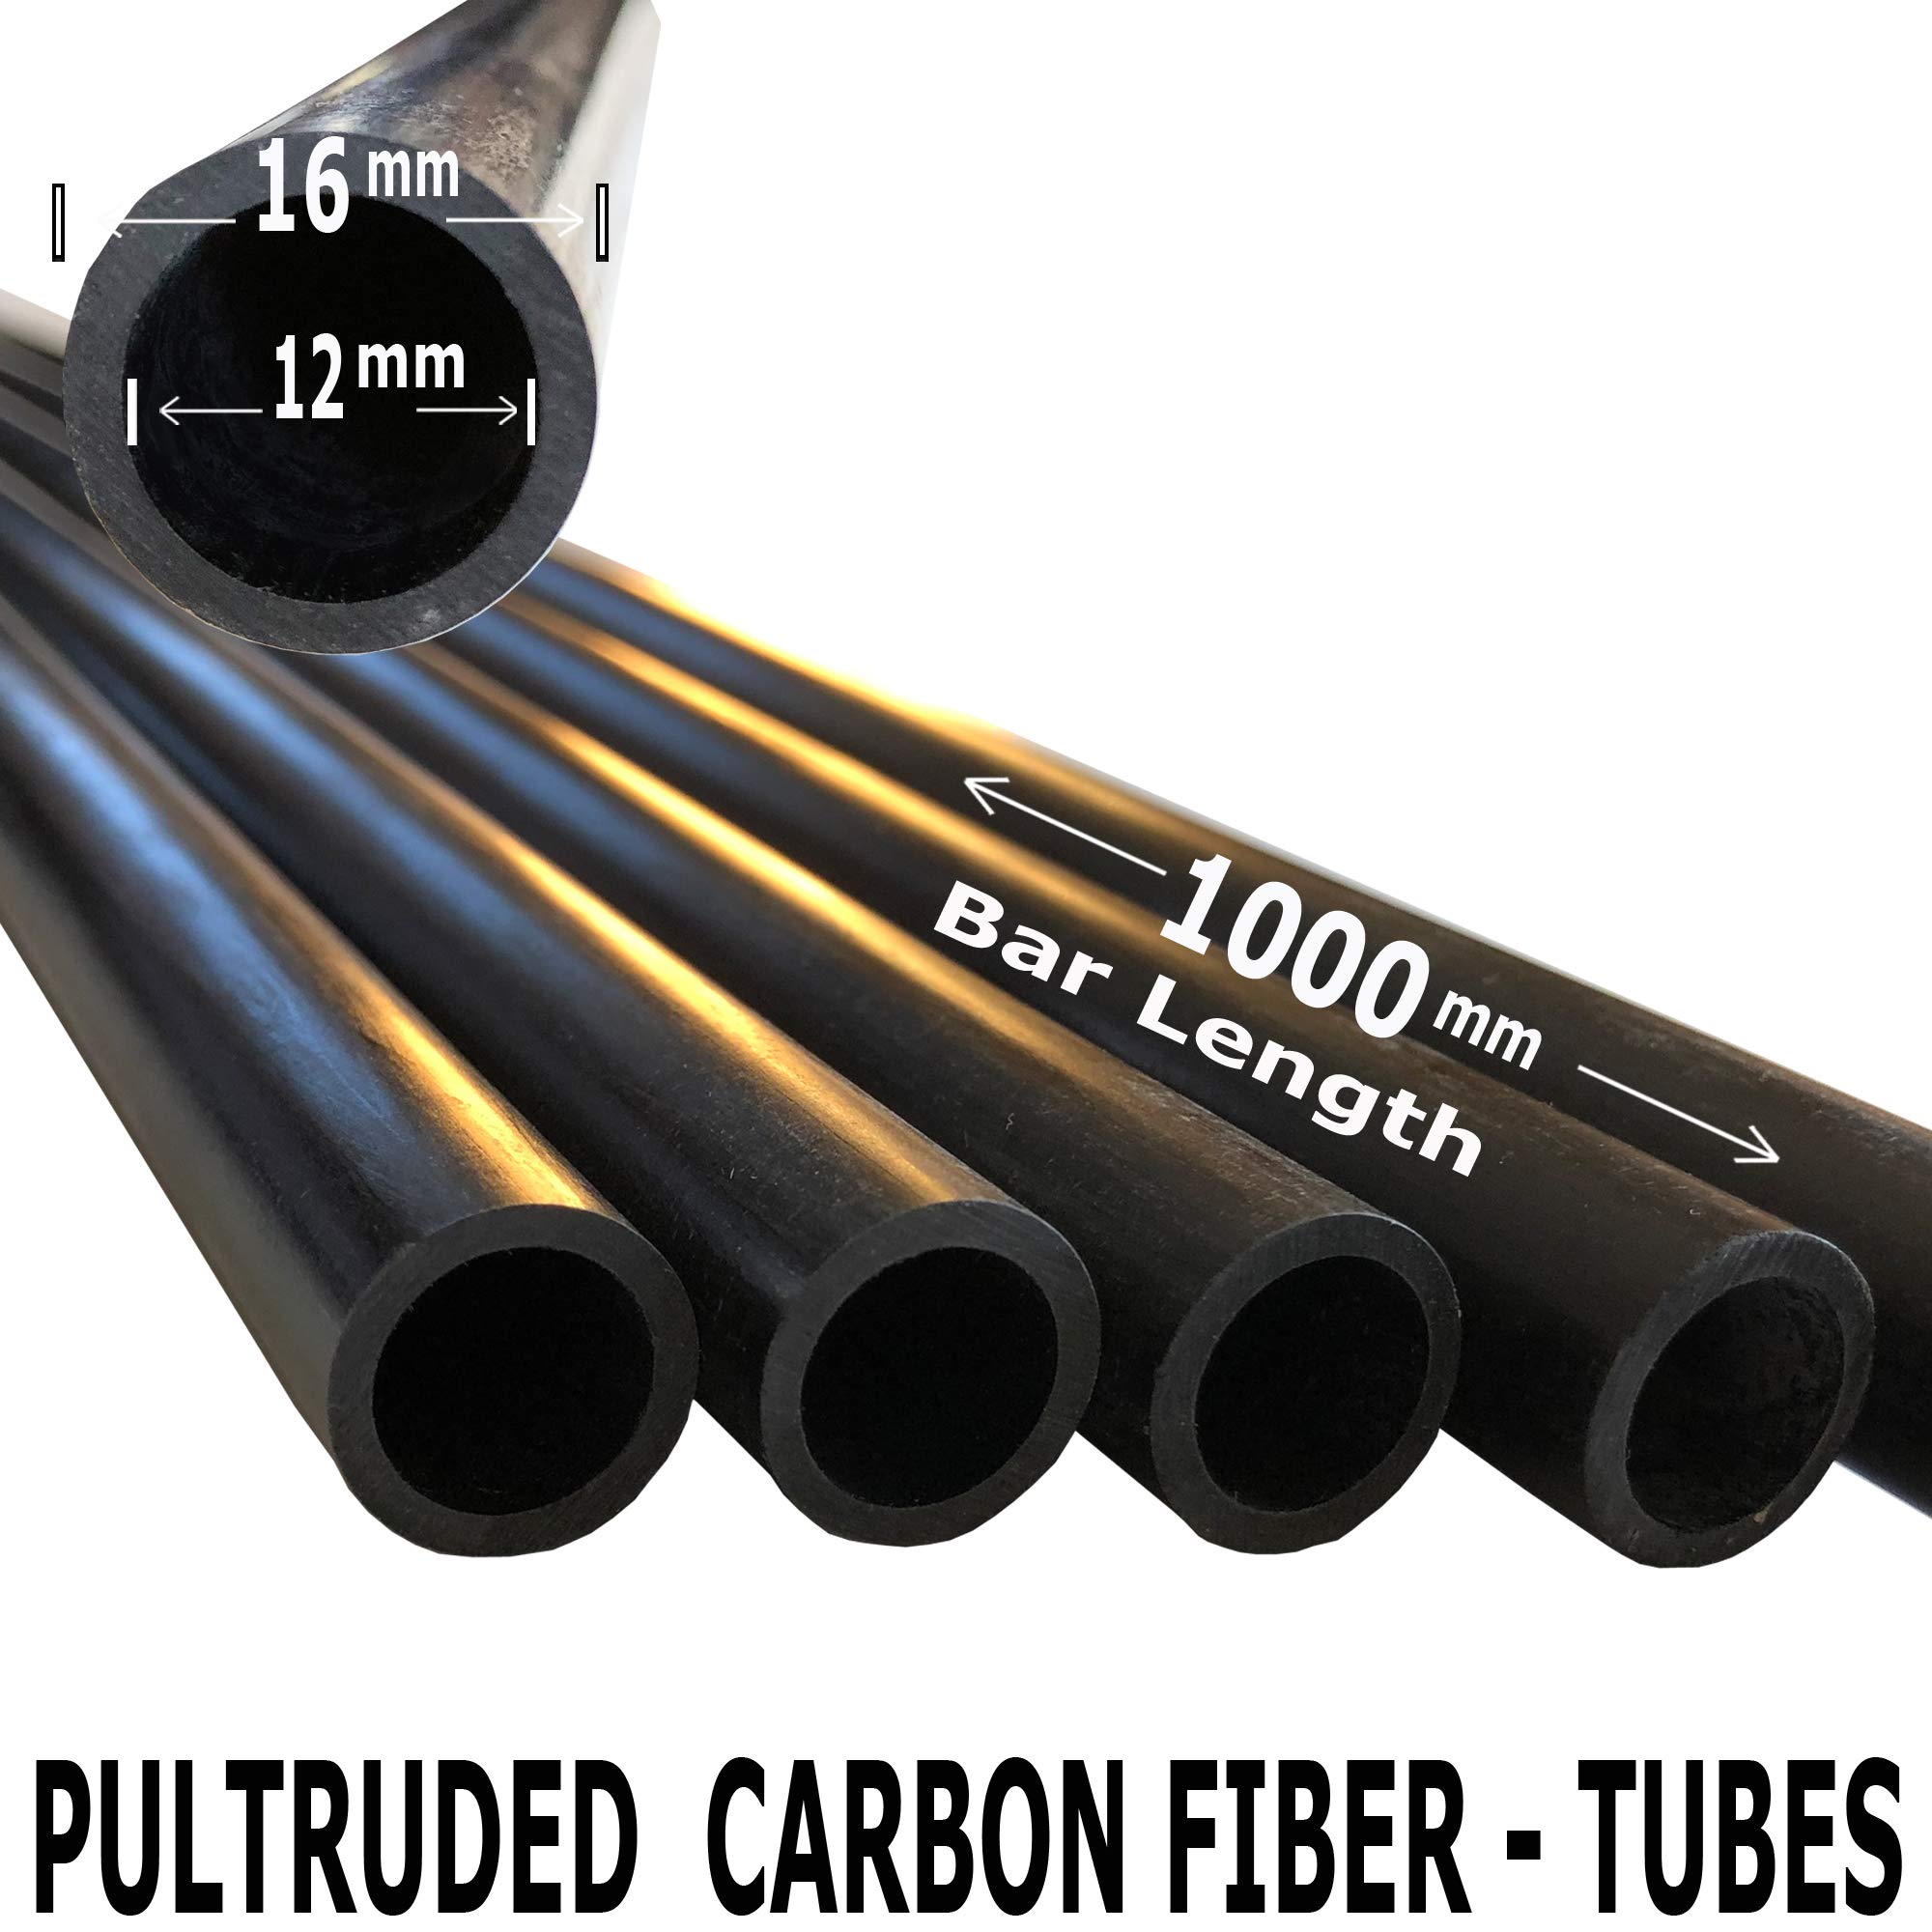 (2) Piece - 16mm x 12mm x 1000mm Carbon Fiber Tube - Pultruded Round Tube. Super High Strength for RC Hobbies, Drones, Special Projects by Carbon Kevlar Supply